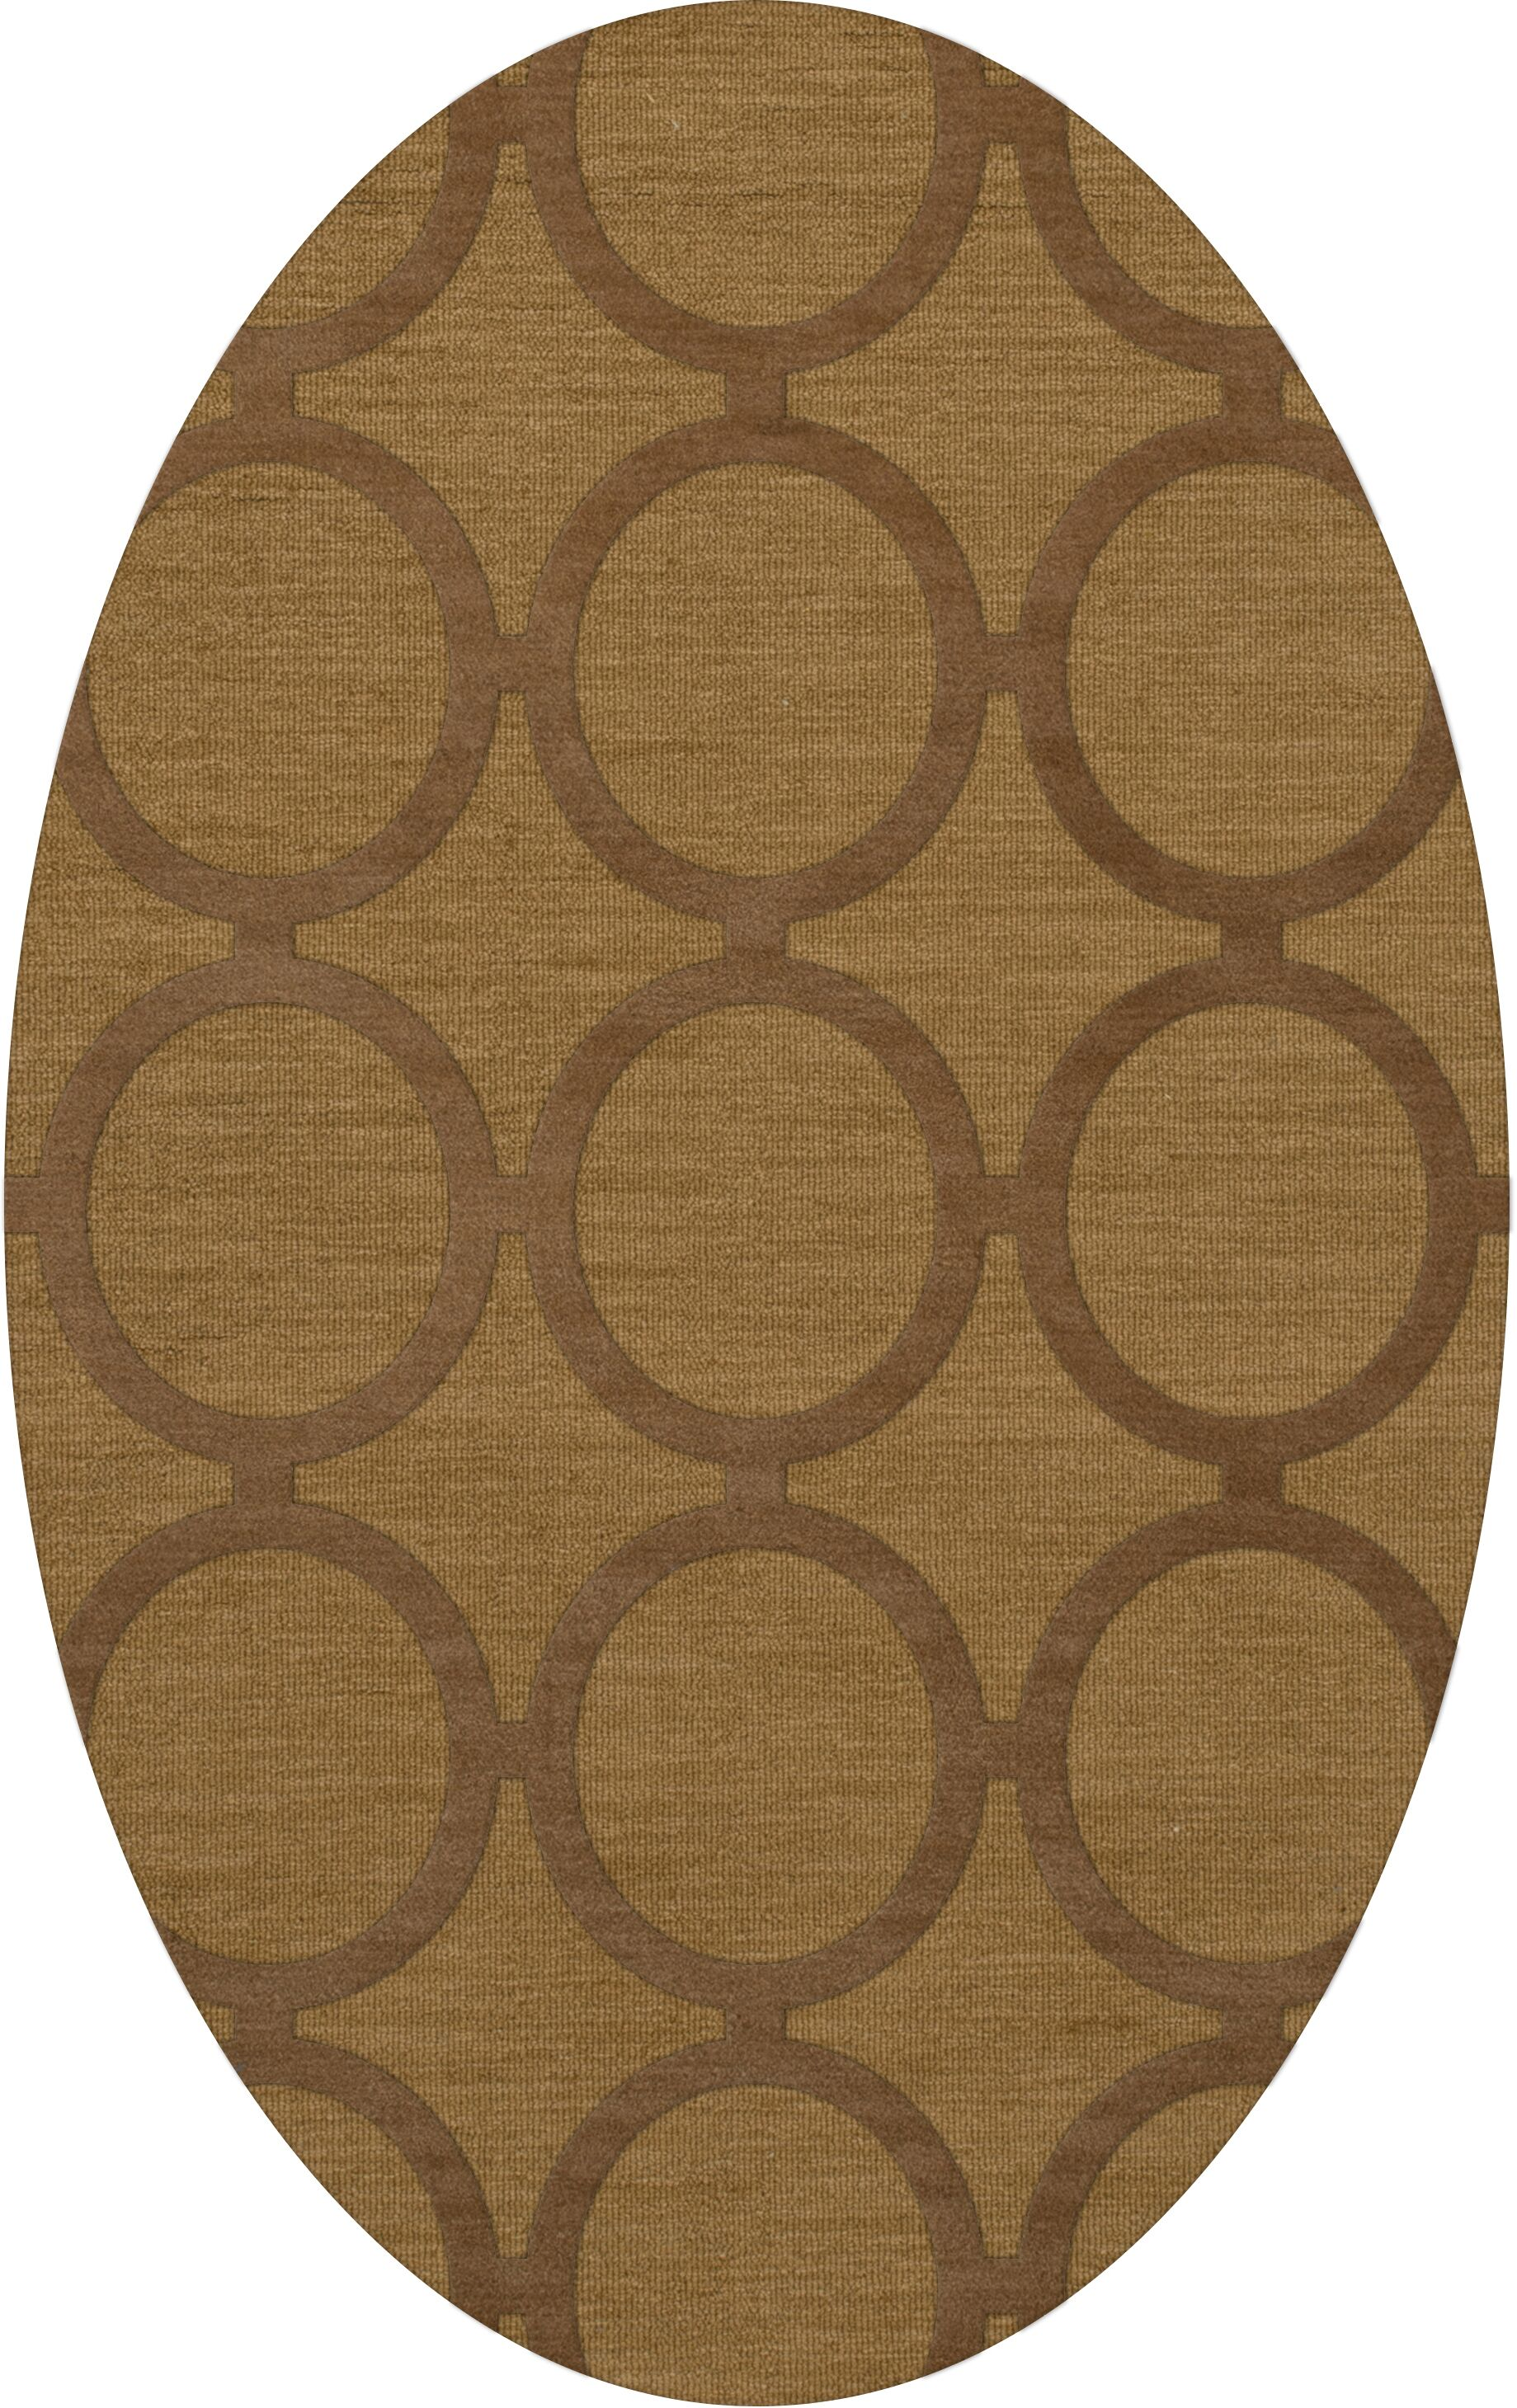 Dover Tufted Wool Gold Dust Area Rug Rug Size: Oval 6' x 9'